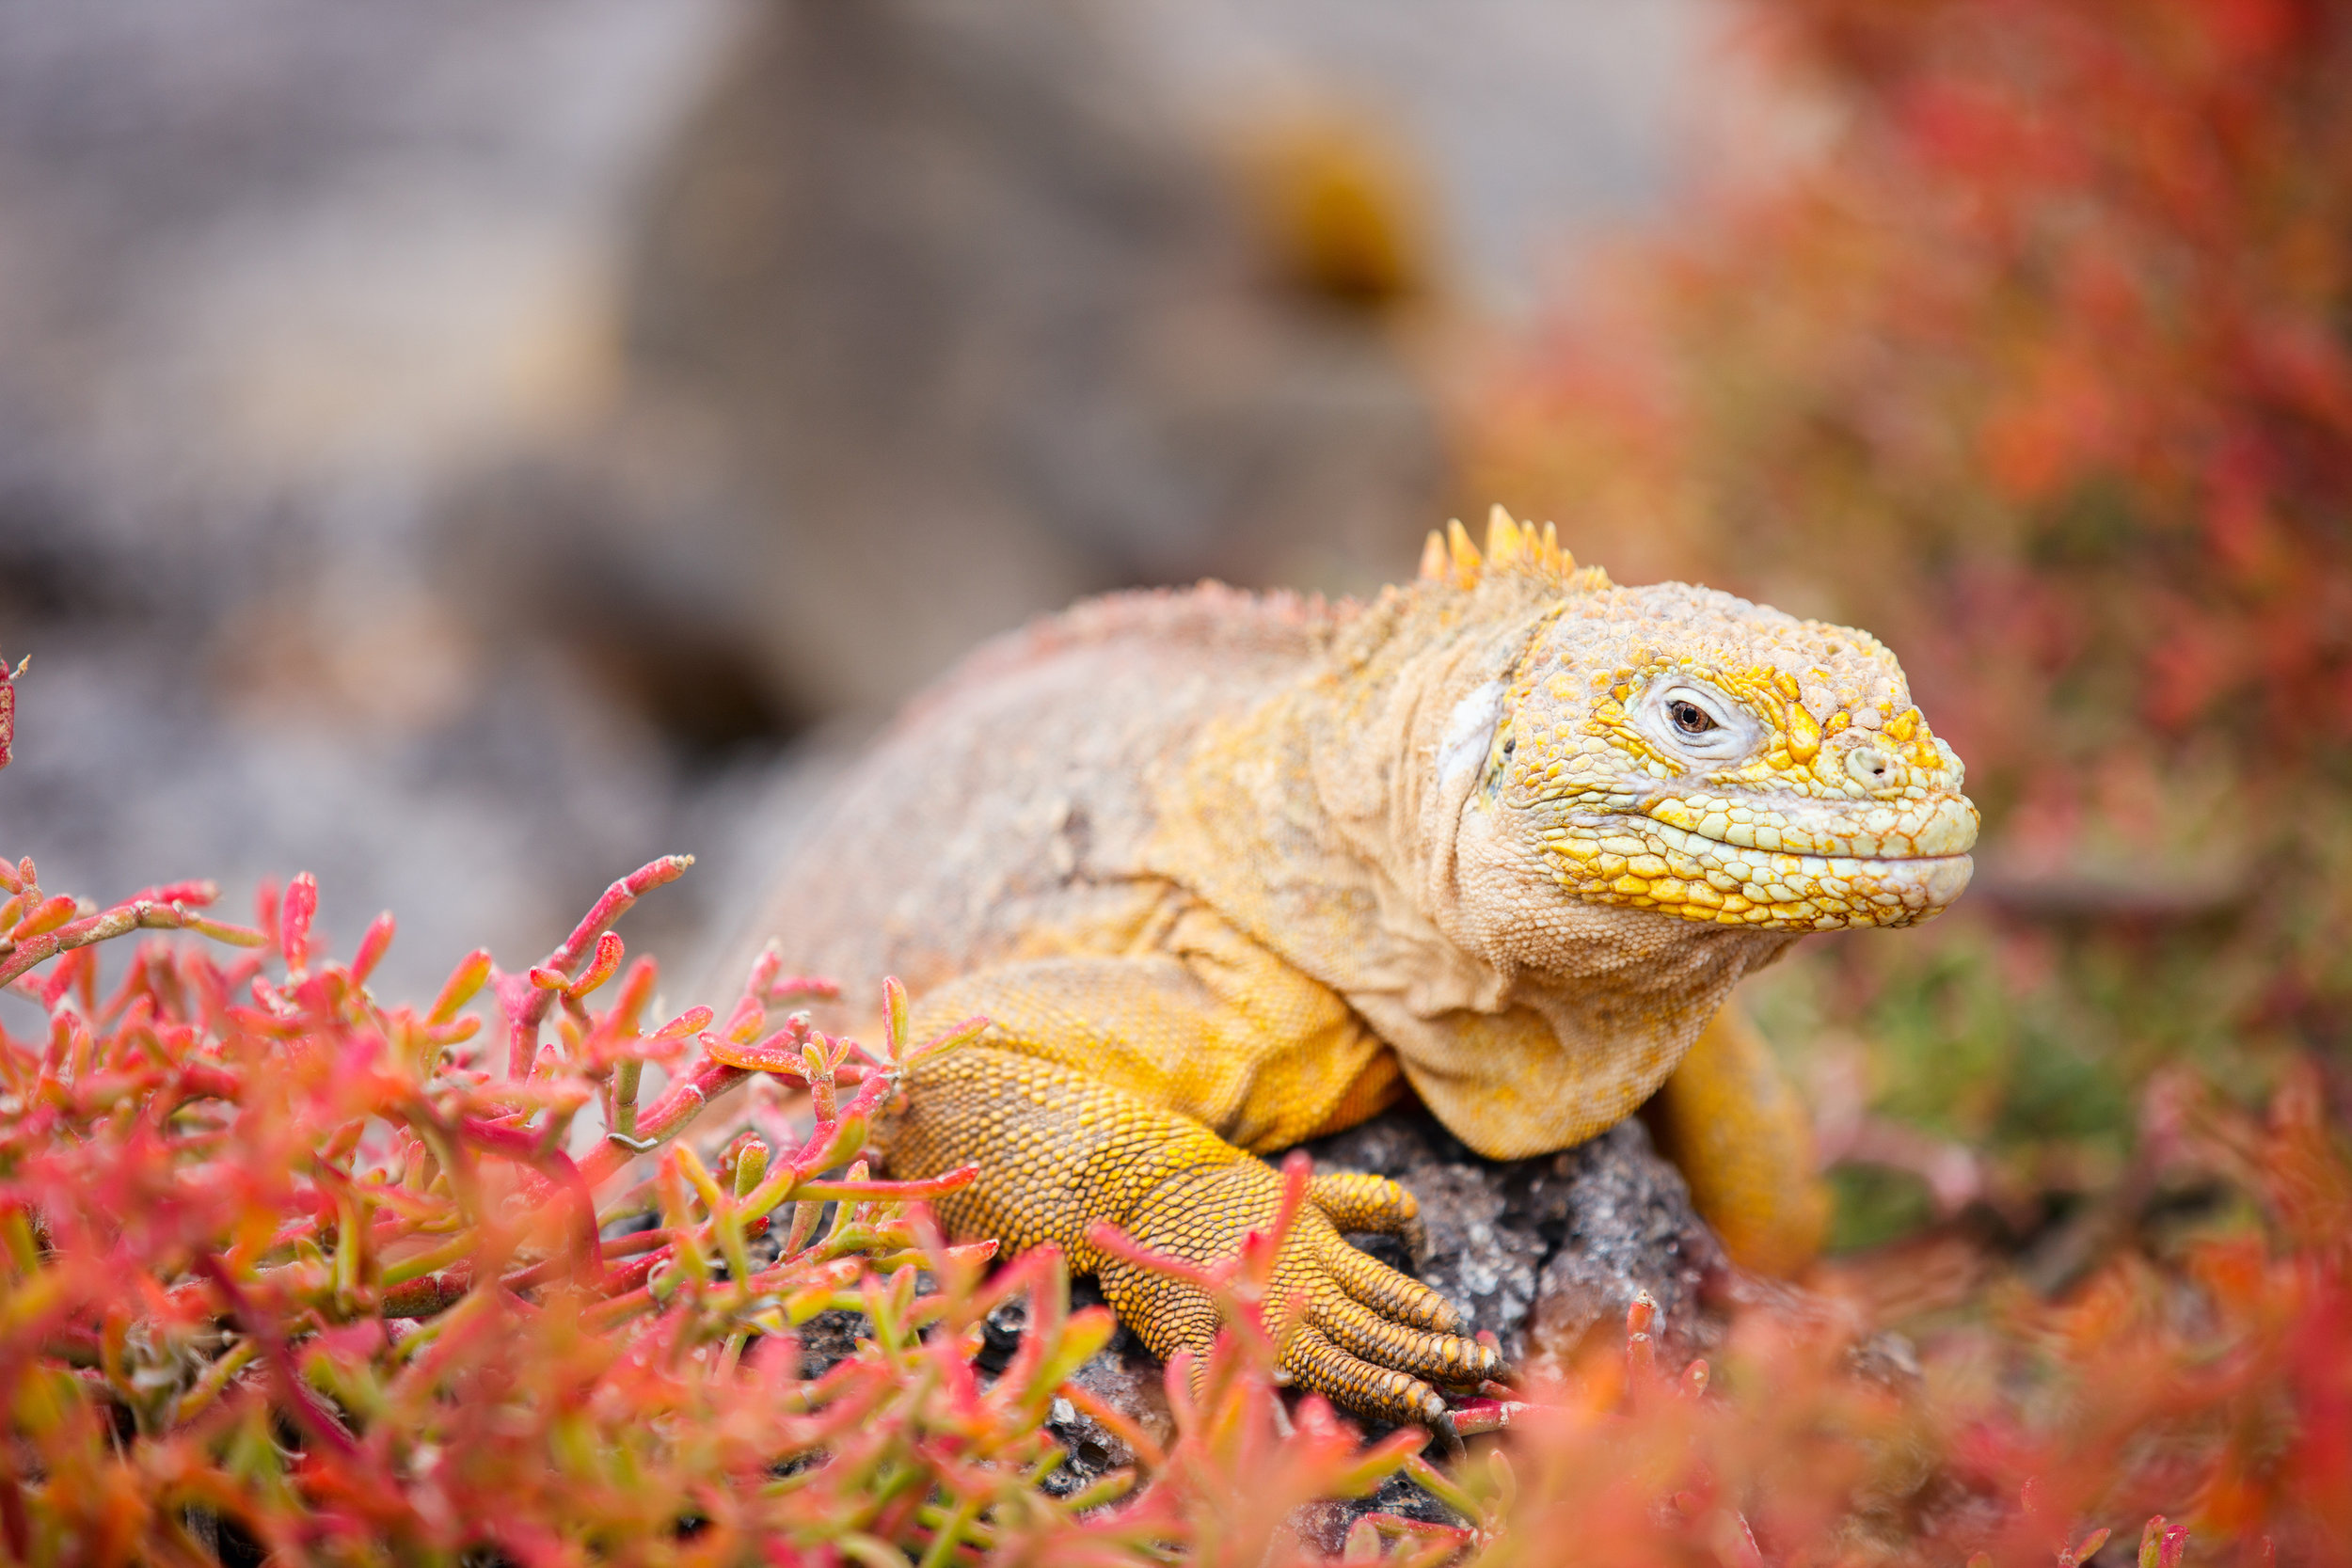 galapagos_bigstock-Land-iguana-endemic-to-the-Gal-41766295.jpg